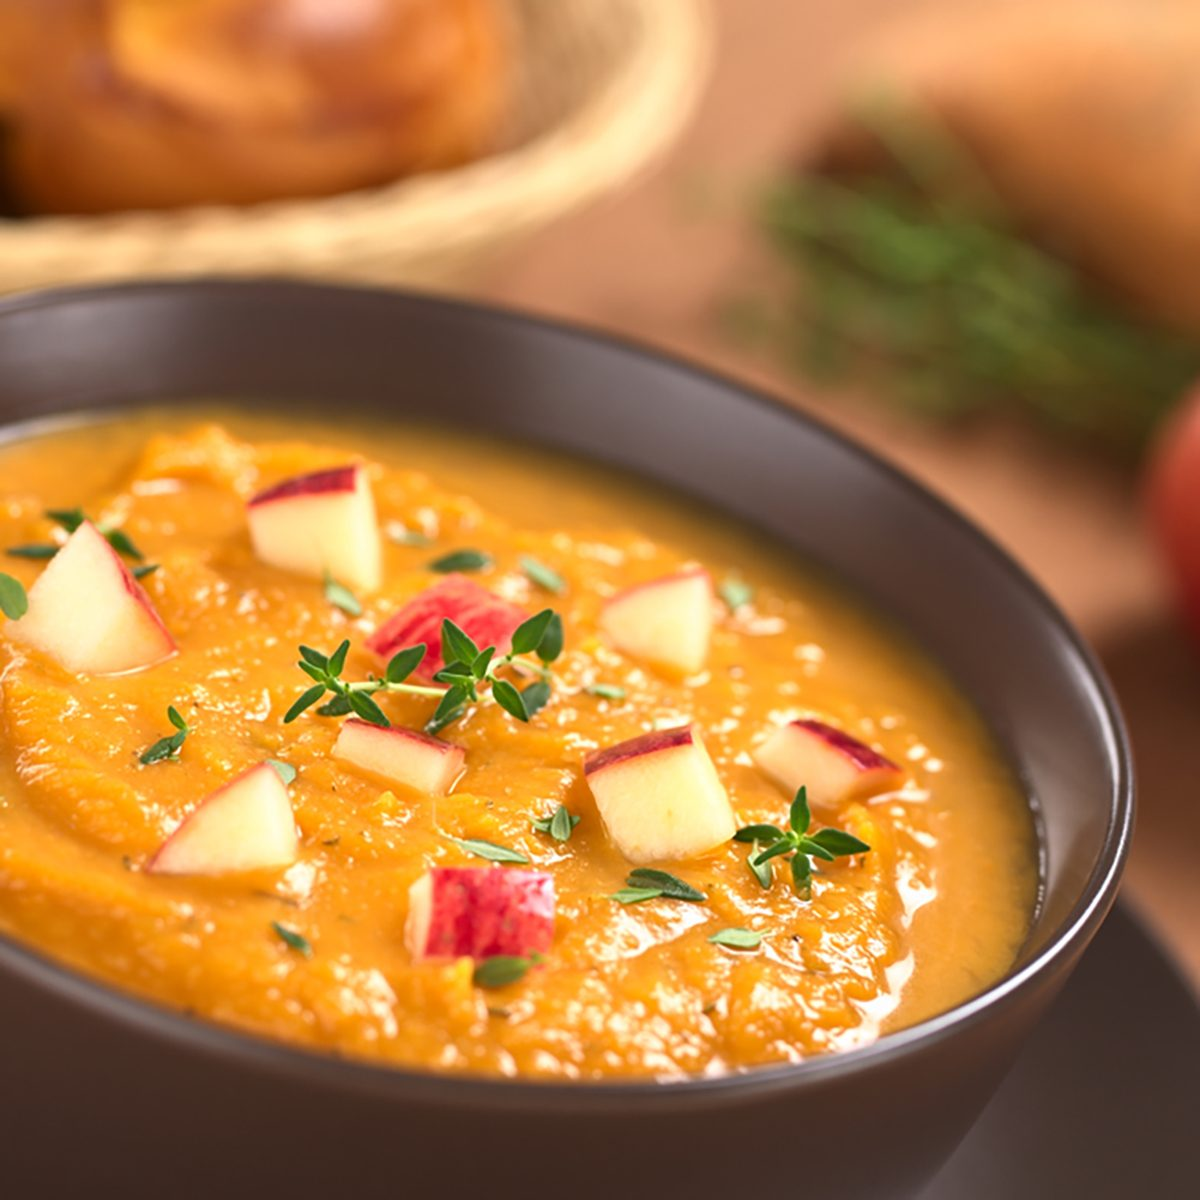 Bowl of fresh homemade sweet potato and apple soup with thyme